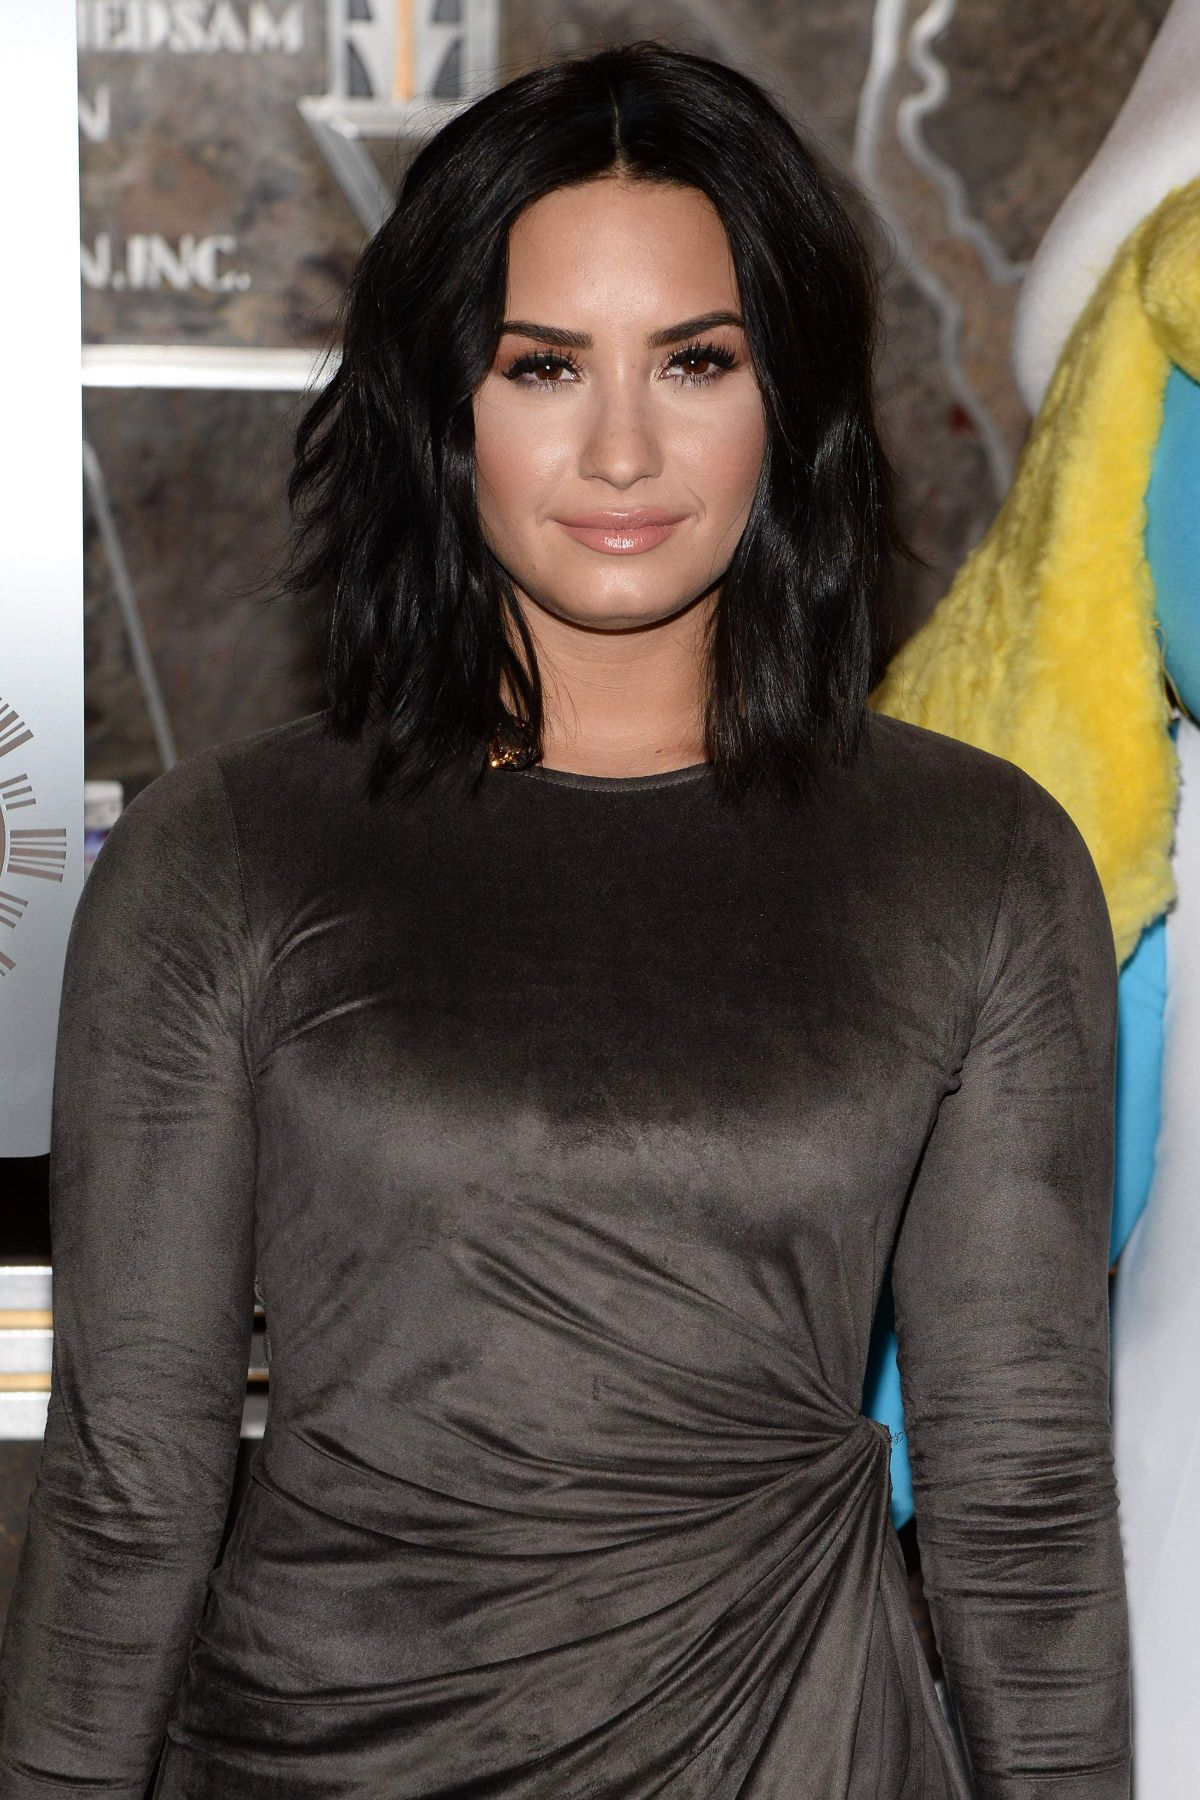 demi lovato - photo #50